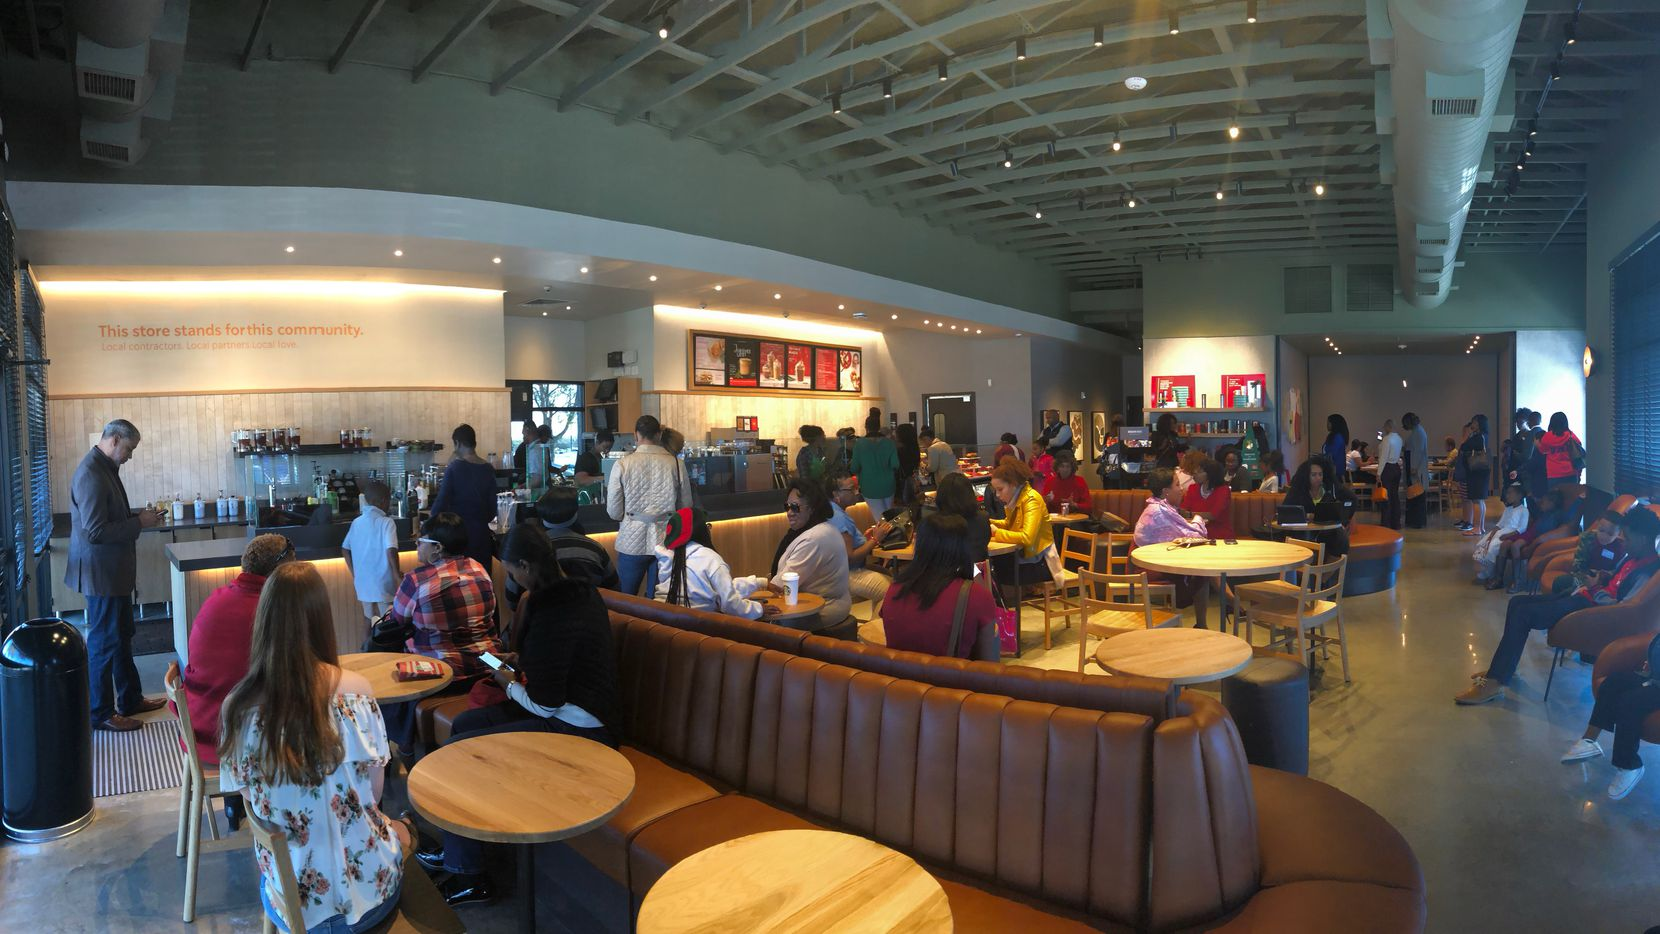 The new Starbucks in Oak Cliff's Red Bird neighborhood drew long lines and lots of excitement during its first few days of business. This was the scene Sunday afternoon.